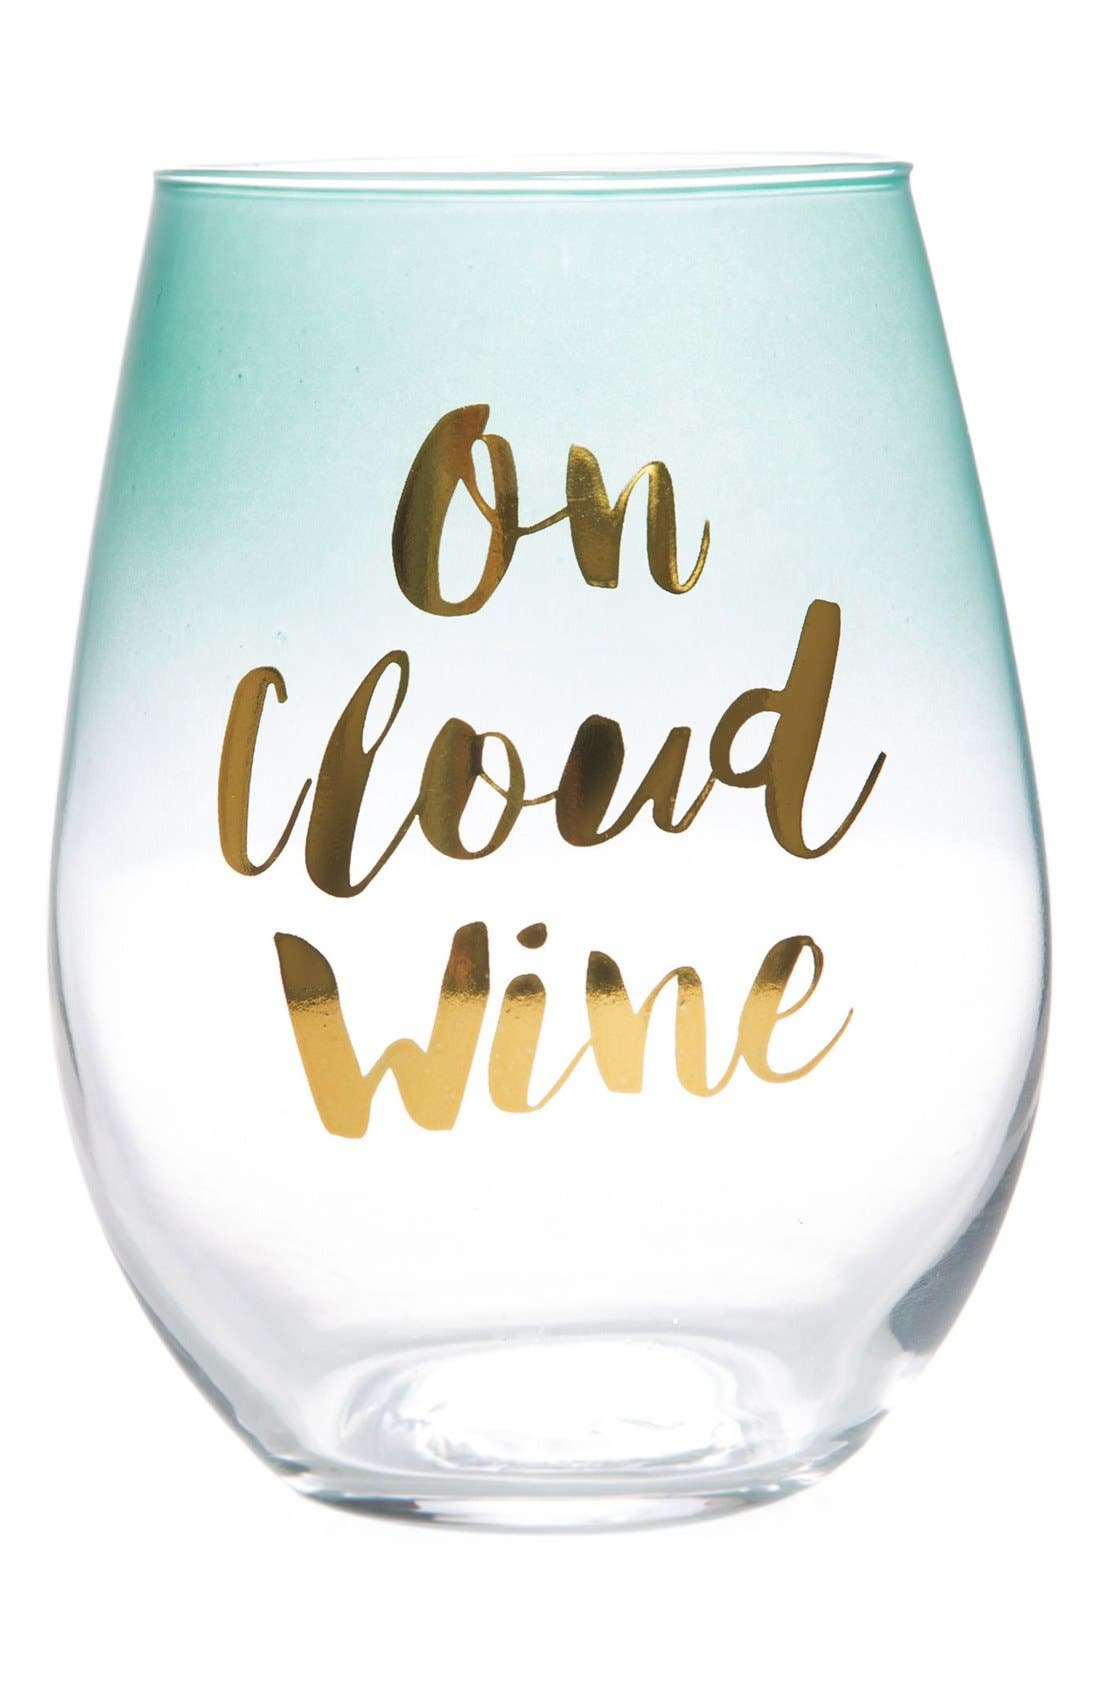 Alternate Image 1 Selected - Slant Collections On Cloud Wine Stemless Wine Glass